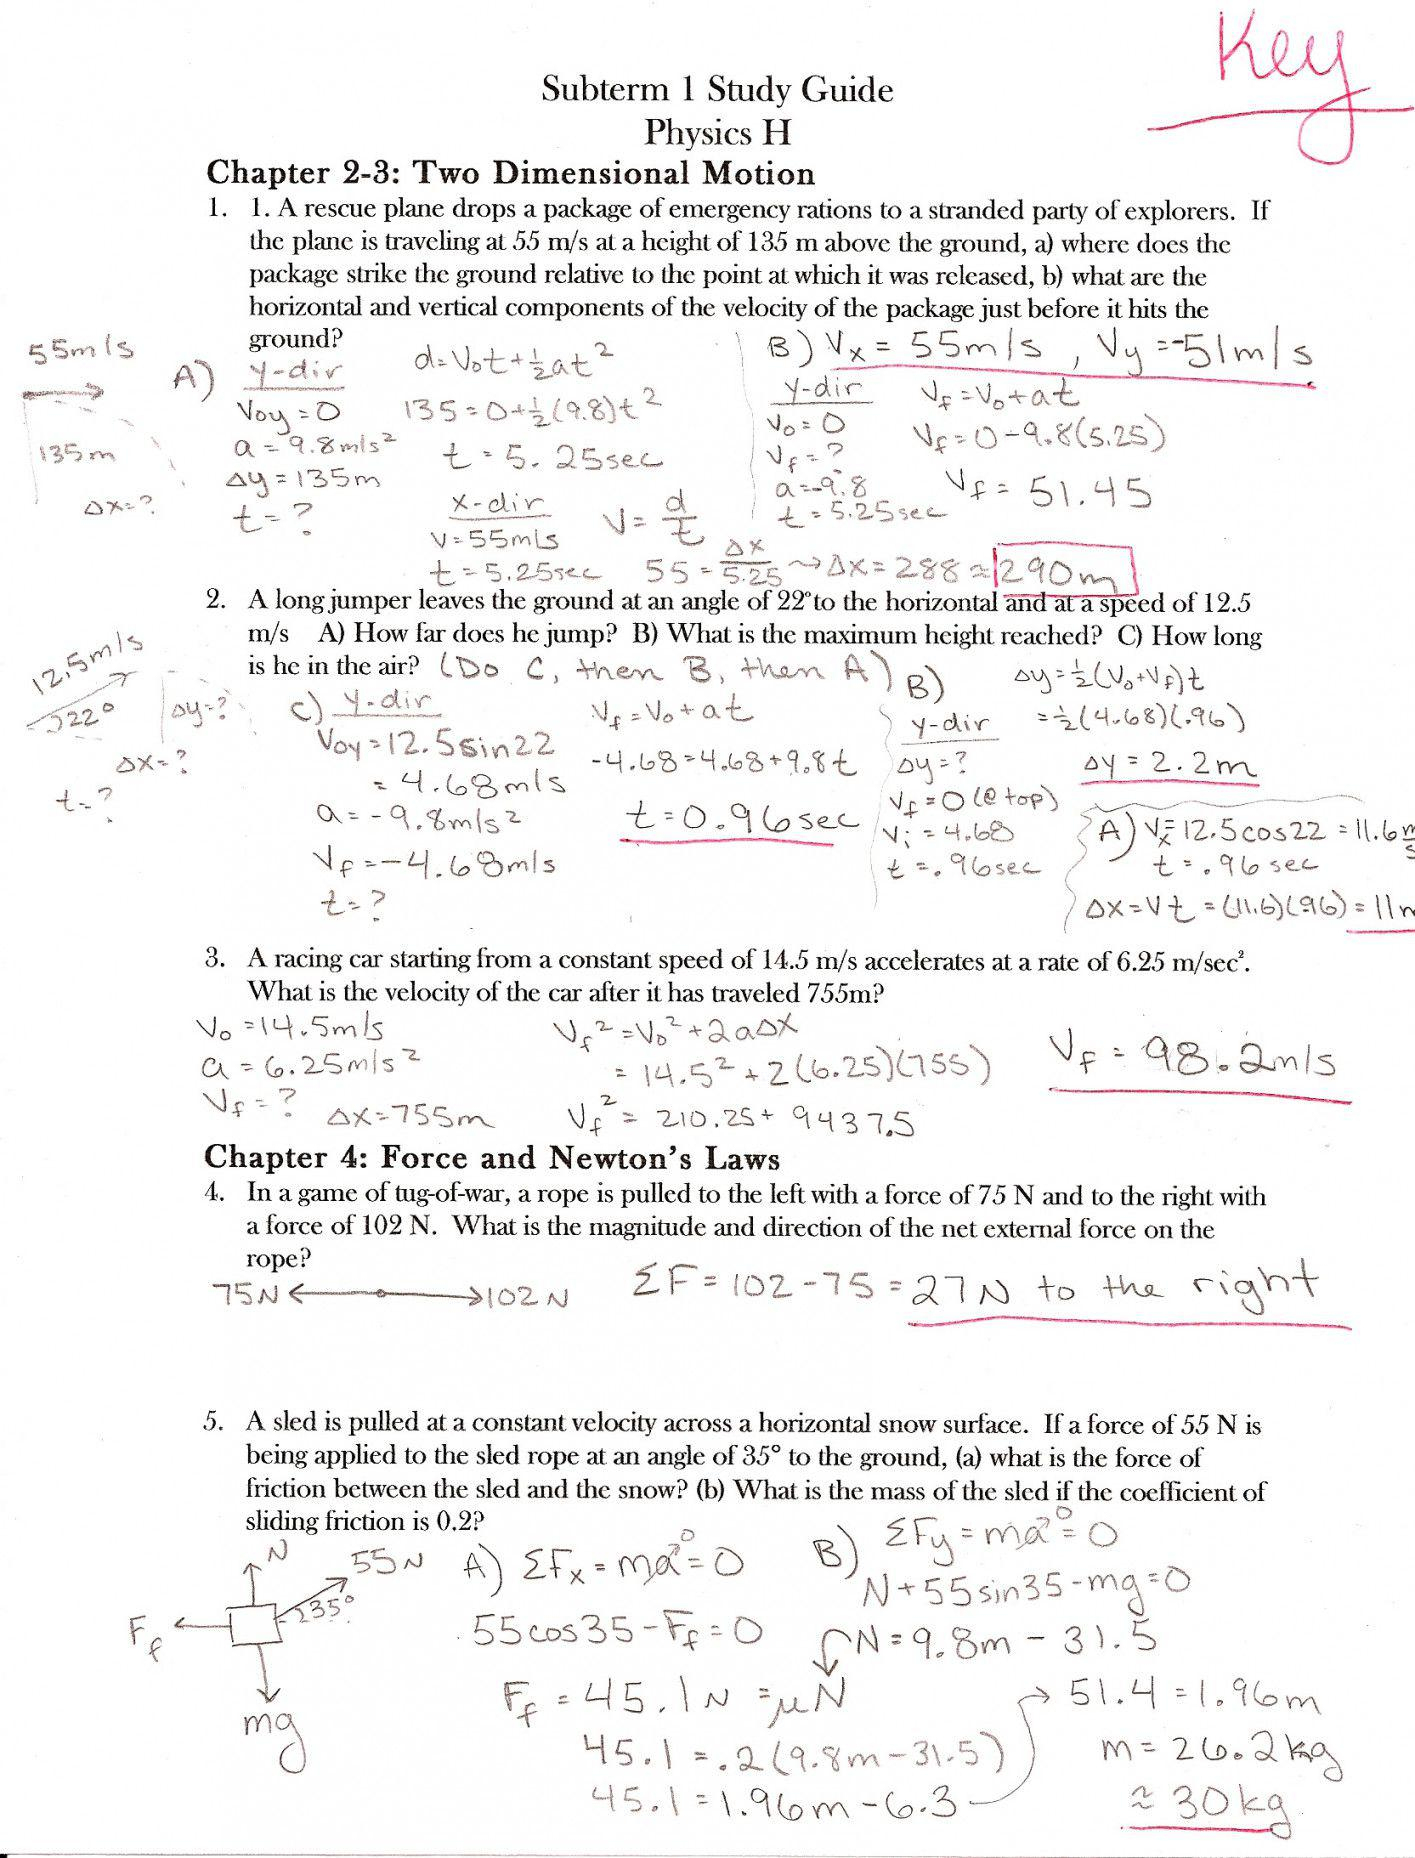 Coefficient Of Friction Worksheet Answers